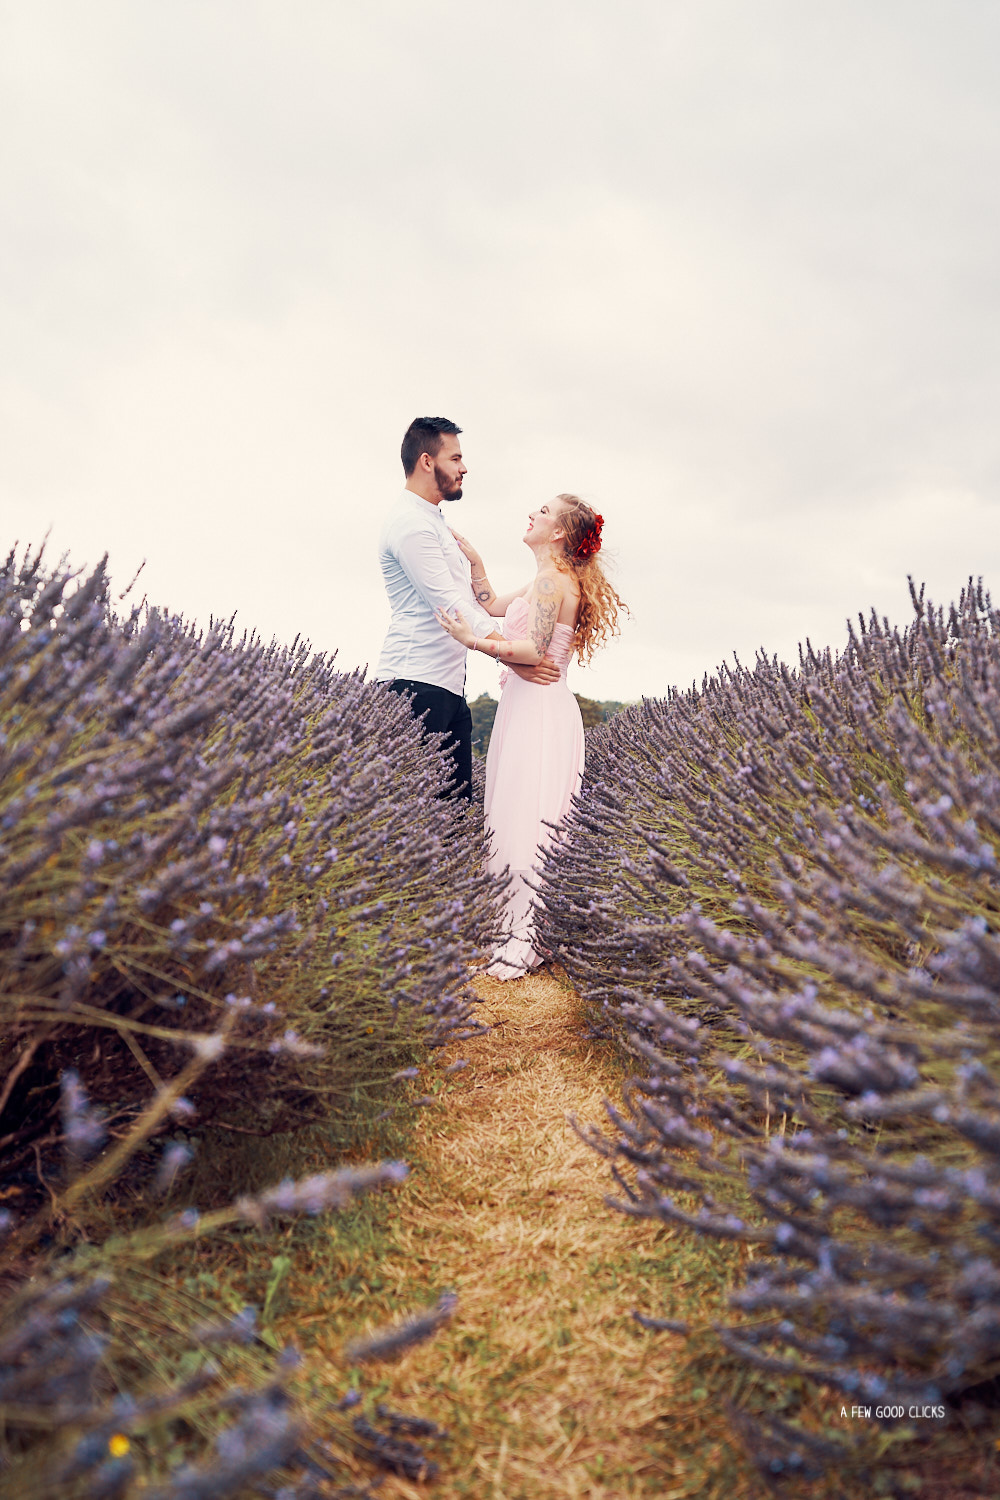 mayfield-lavender-farms-couples-photoshoot-in-kent-uk-by-afewgoodclicks